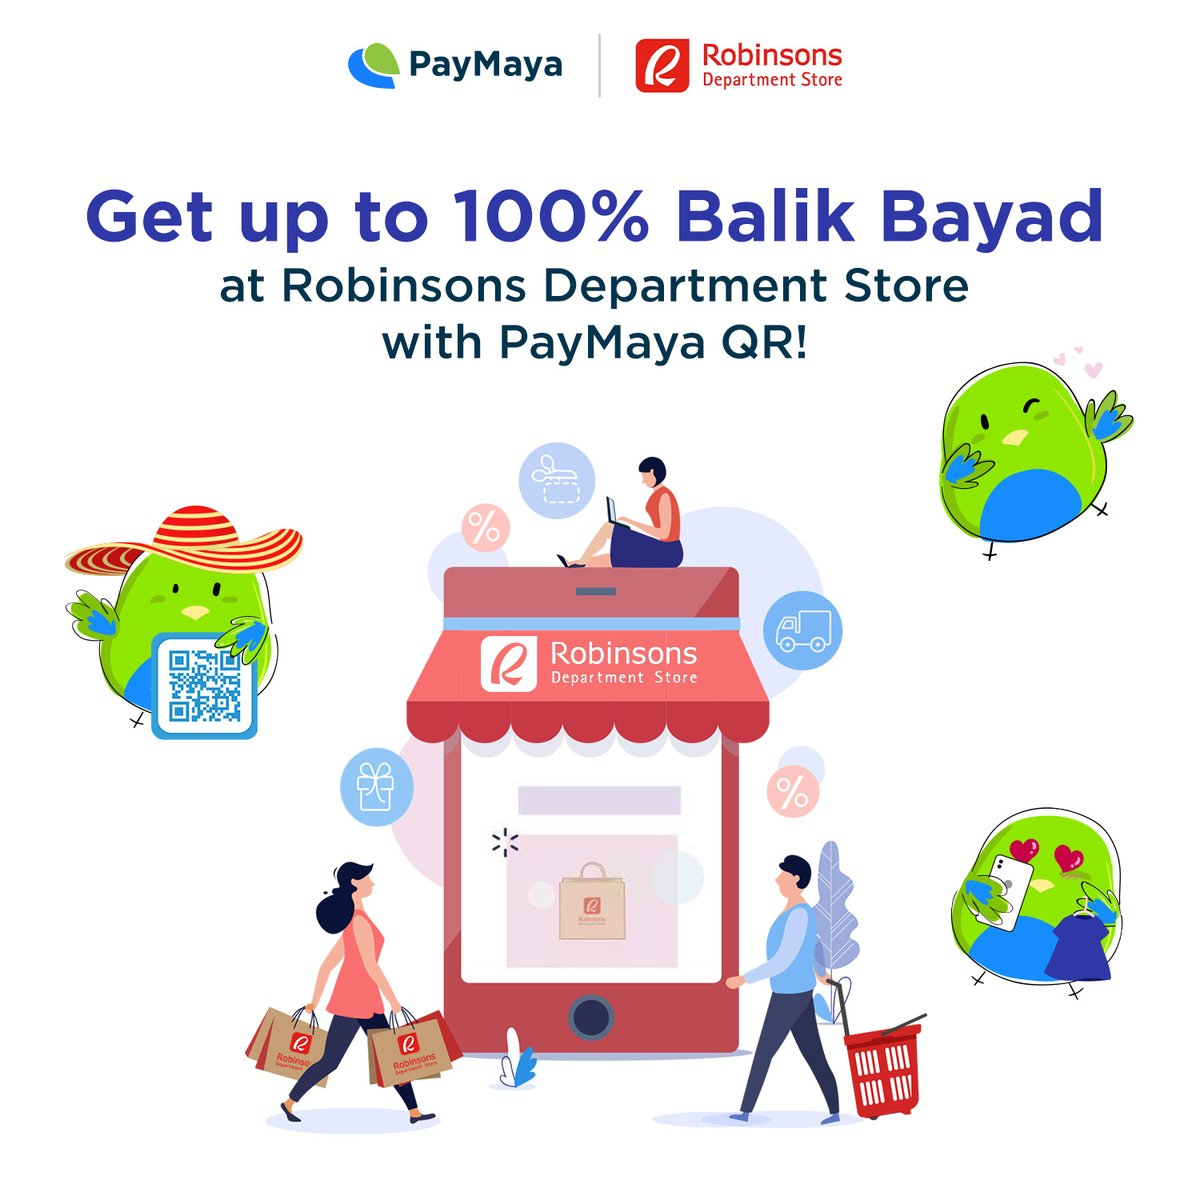 Shop from select Robinsons Department Store branches online and get up to 100% Balik Bayad* when you #ScanToPay with PayMaya QR!   *Capped at P500. Find out how to order online  👉🏻 https://t.co/csSyHAUkLn https://t.co/iJcnK0kdzh